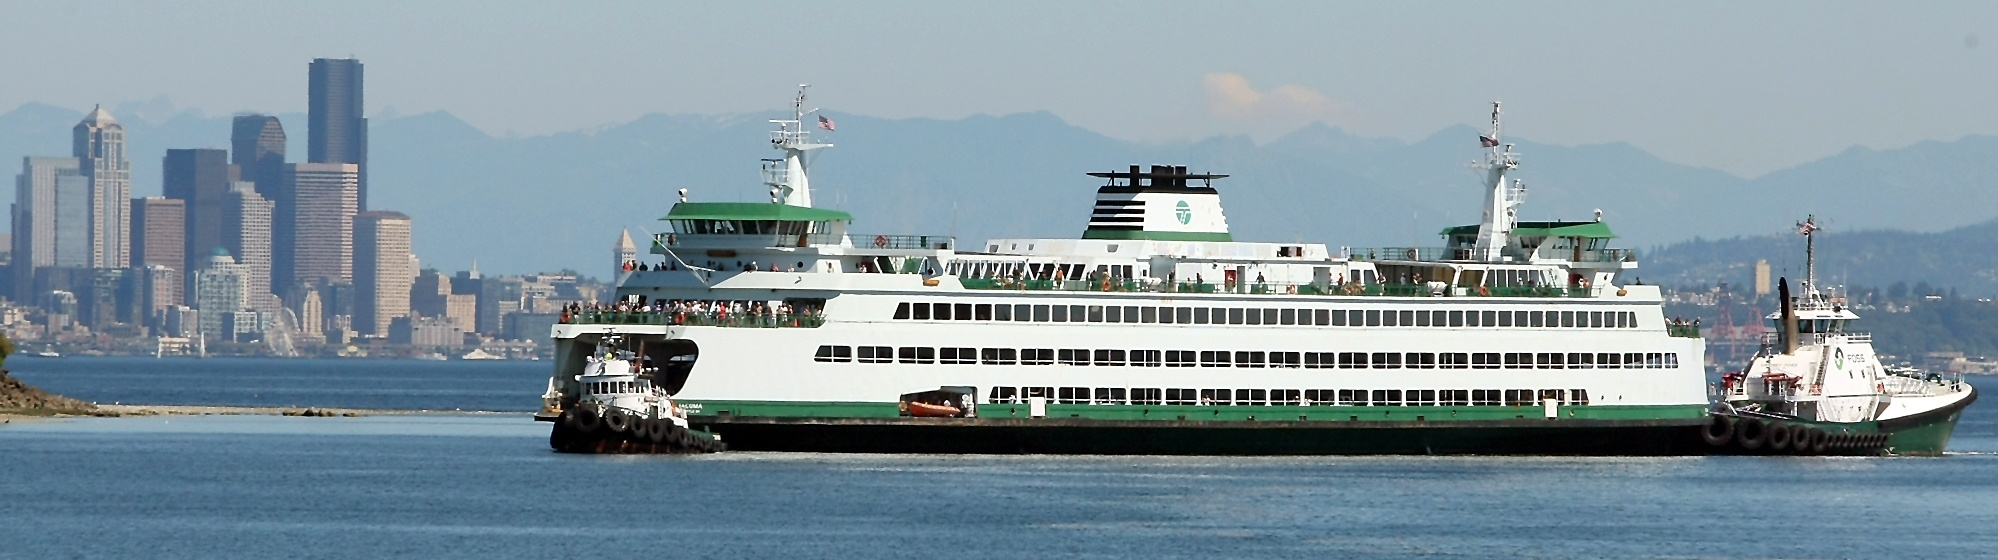 washington state ferries to resume normal schedule saturday | the